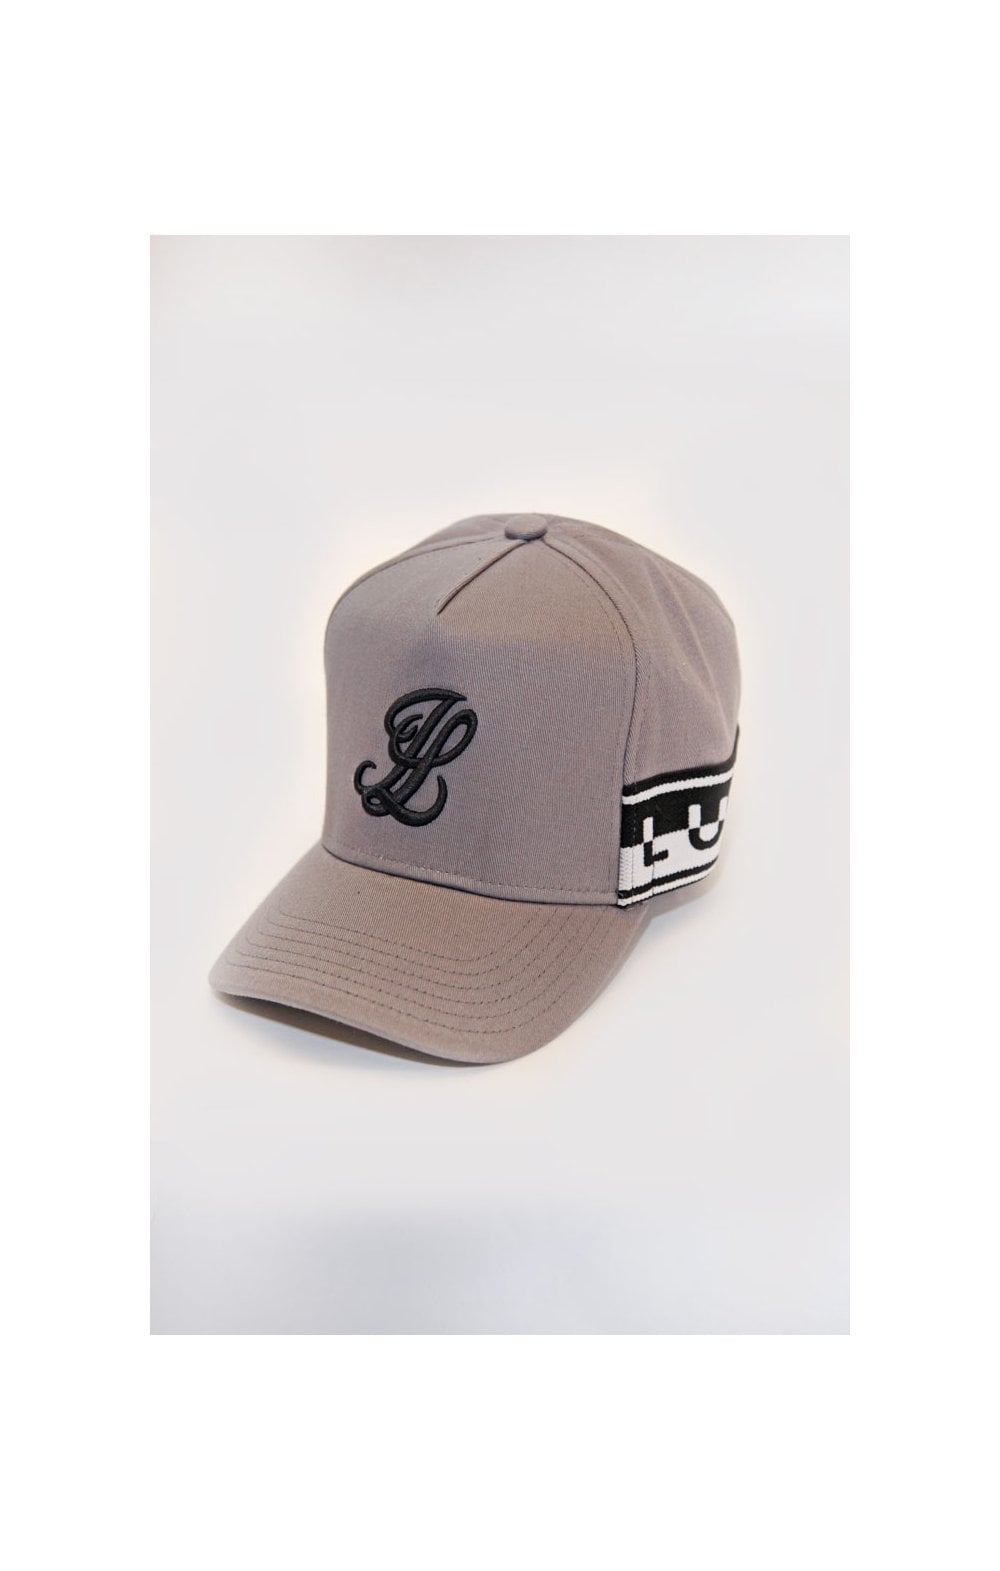 Load image into Gallery viewer, Illusive London Taped Trucker - Grey & Black